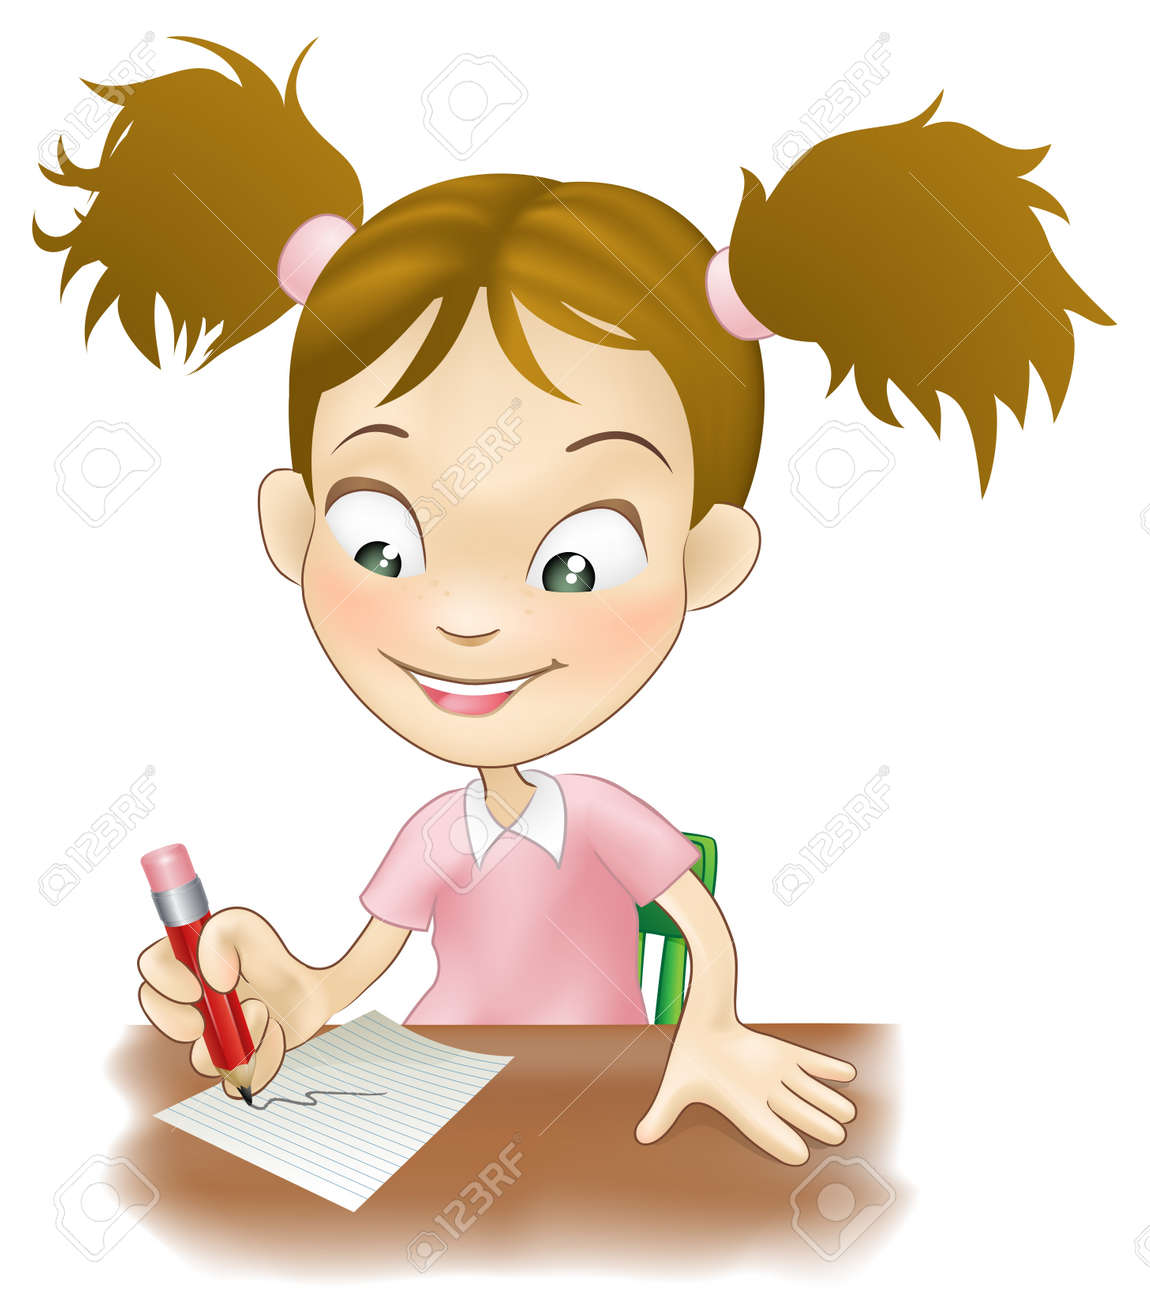 Illustration of a cute young girl sat at her desk writing on paper. Stock Vector - 12808876